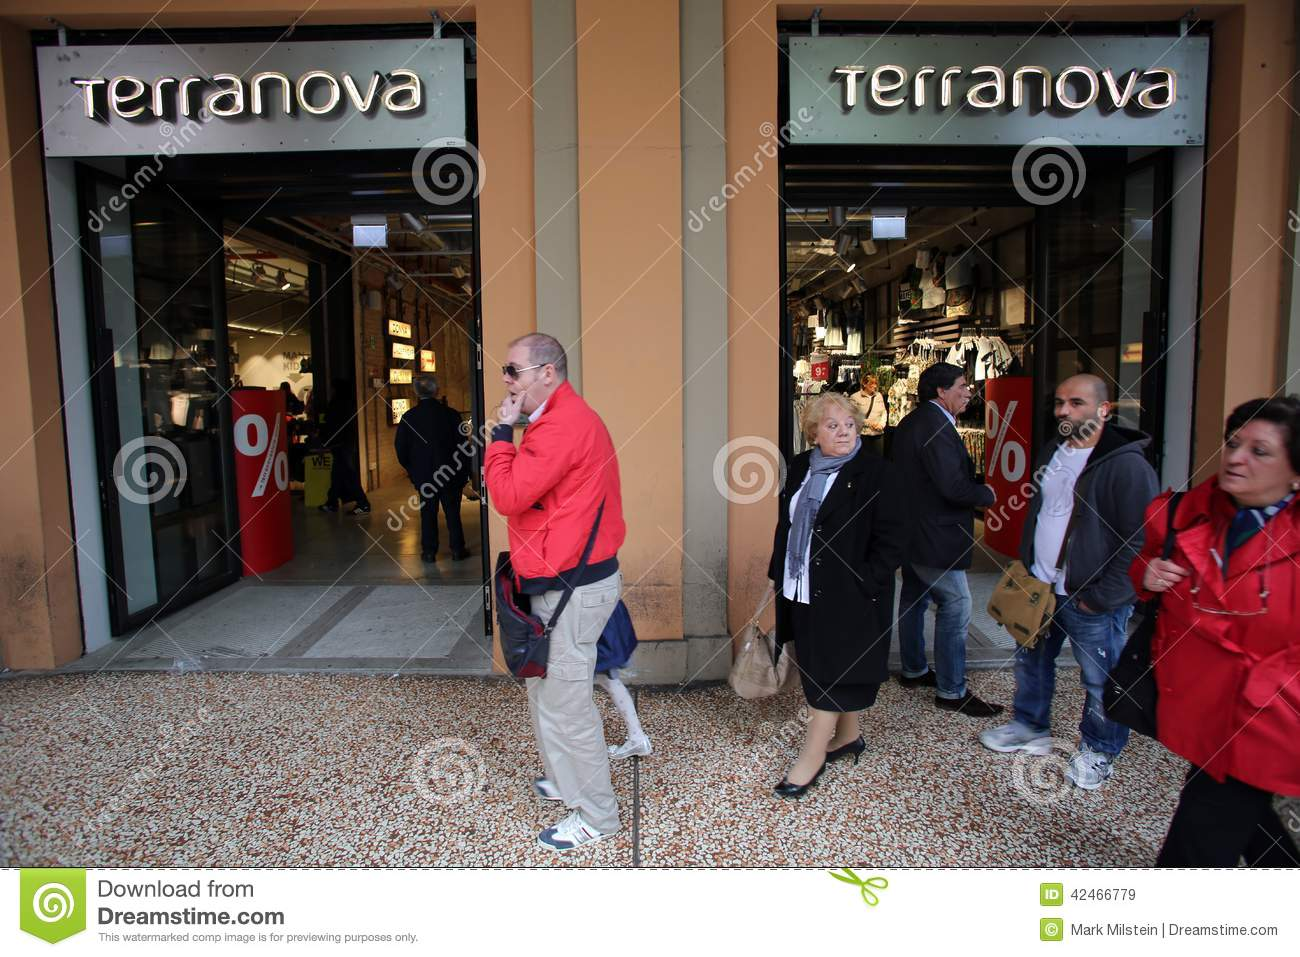 Clothing stores in italy. Cheap online clothing stores